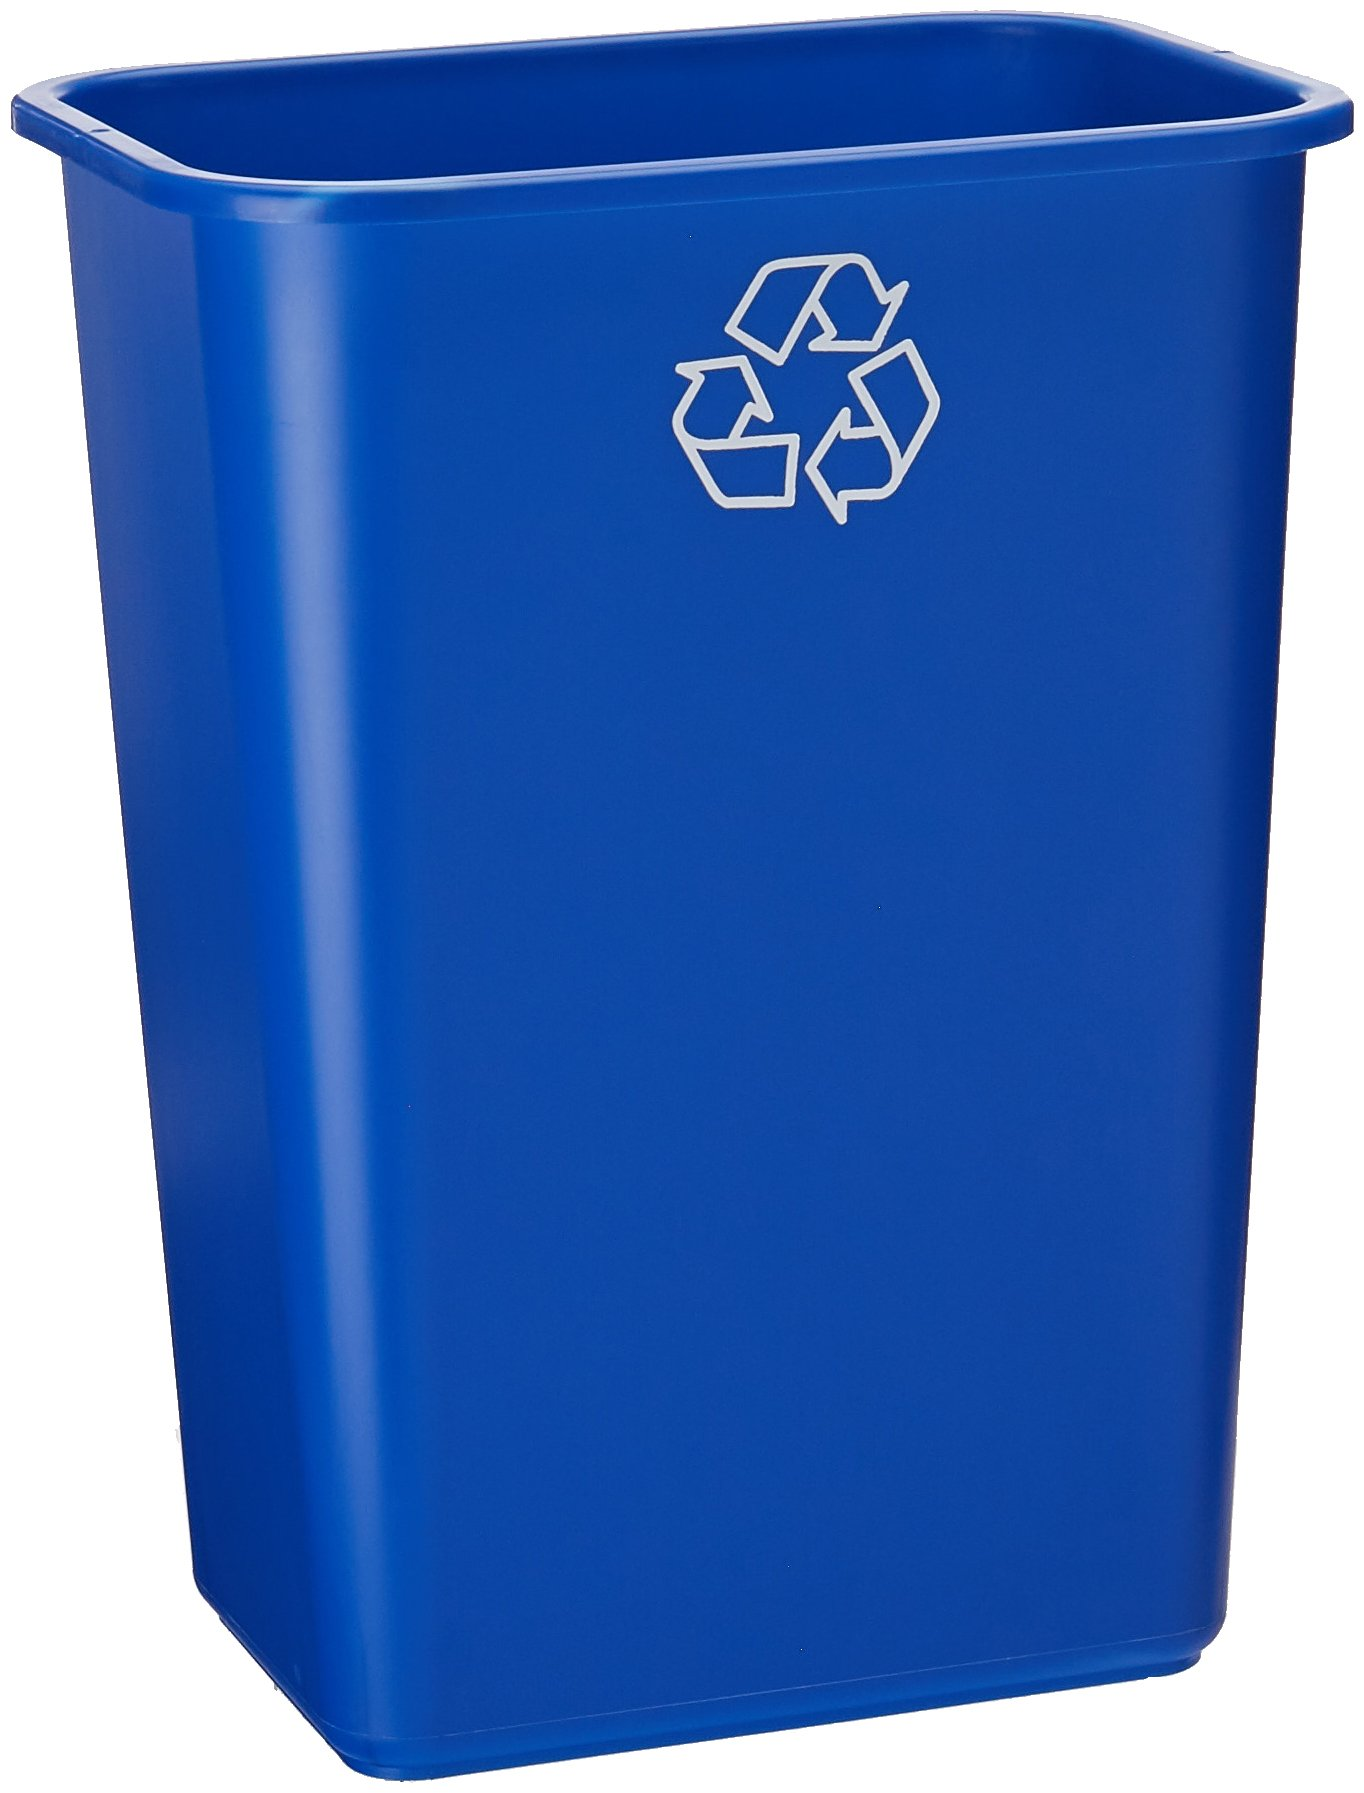 United Solutions EcoSense WB0069 Blue Plastic 41 Quart Recycling Indoor Wastebastket-10.25 Gallon EcoSense Blue Recycling Trash/Refuse Can in Blue